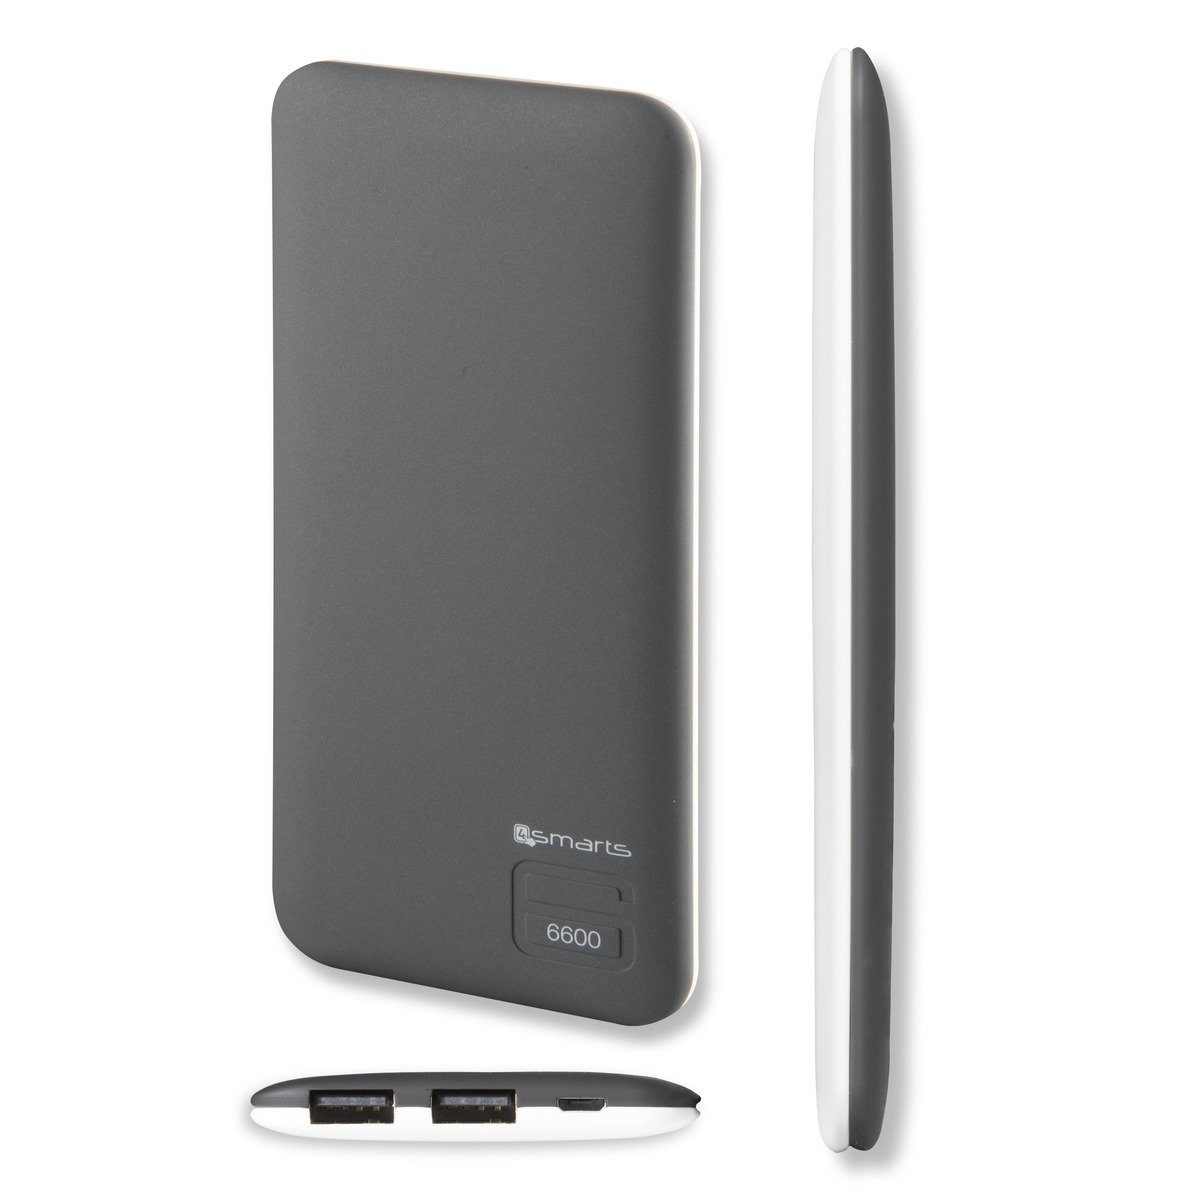 4Smarts Lader »Duos Slim Powerbank 6600 mAh«